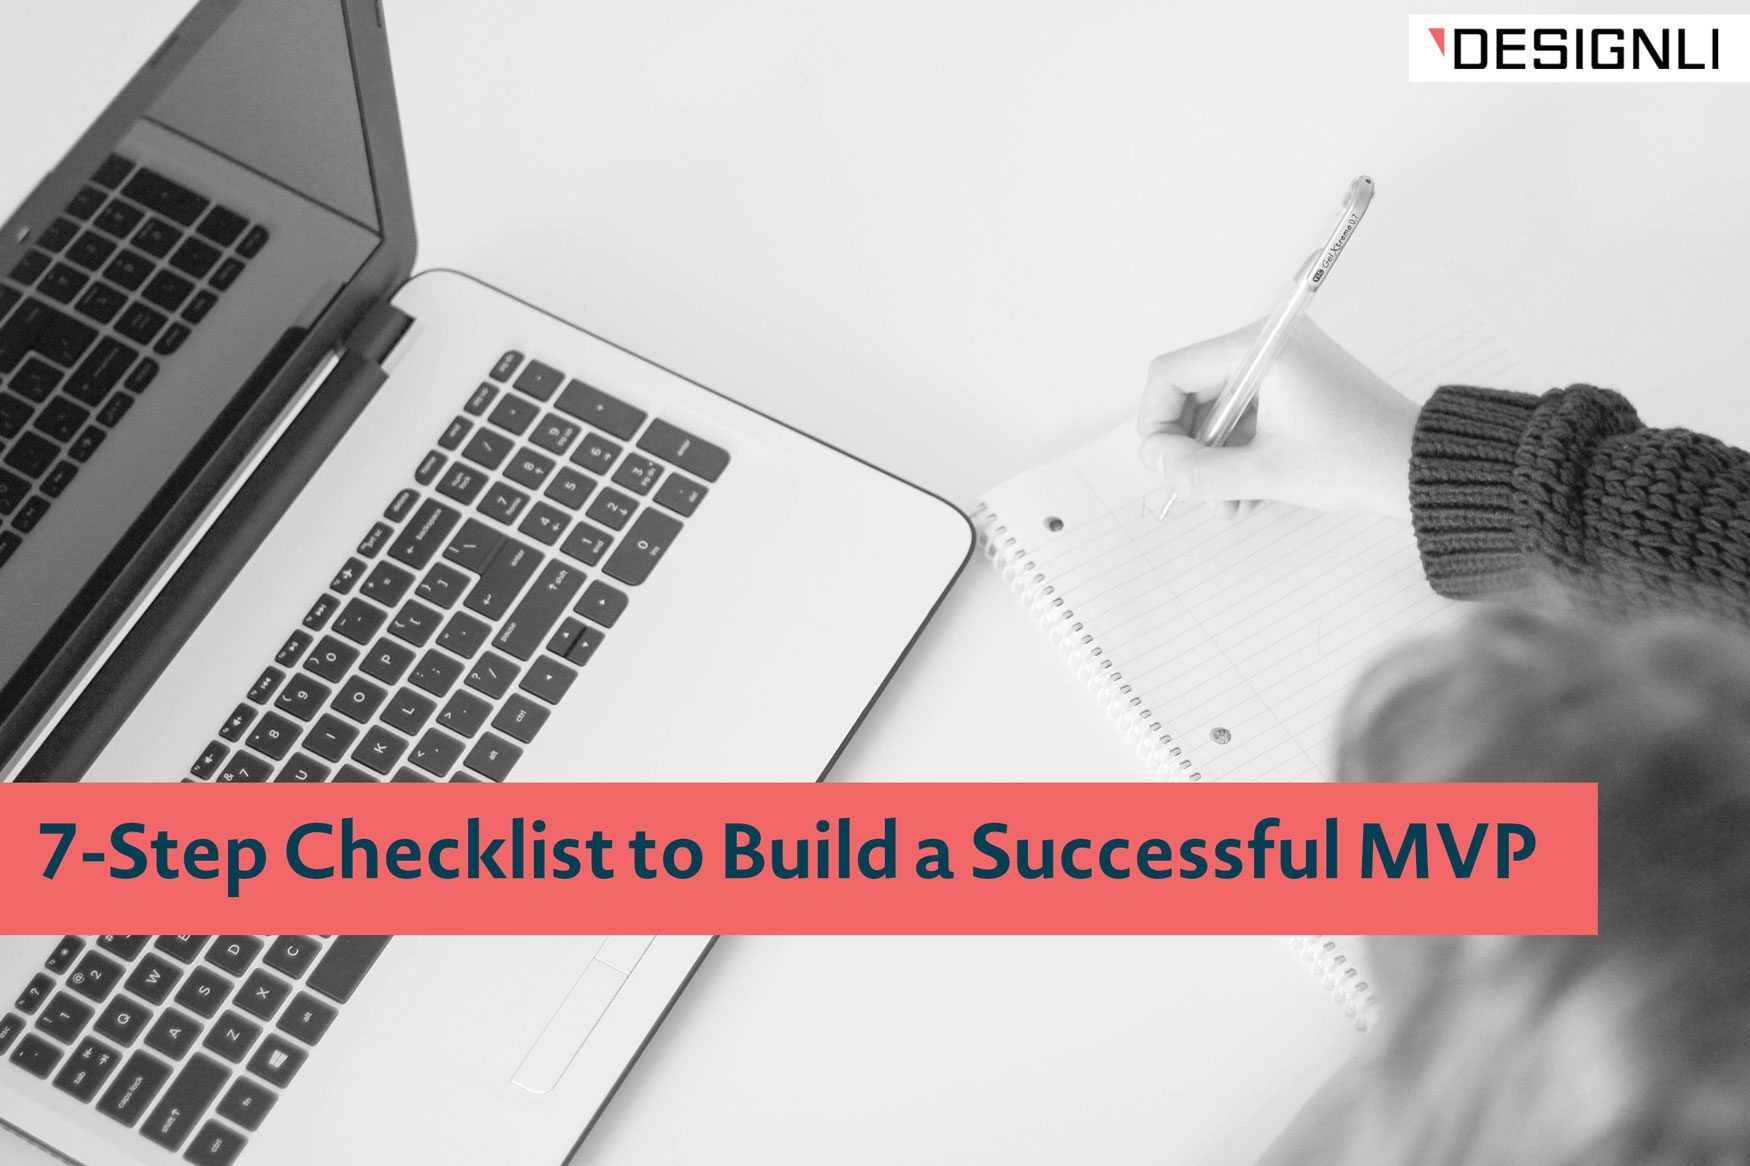 Build a Successful MVP